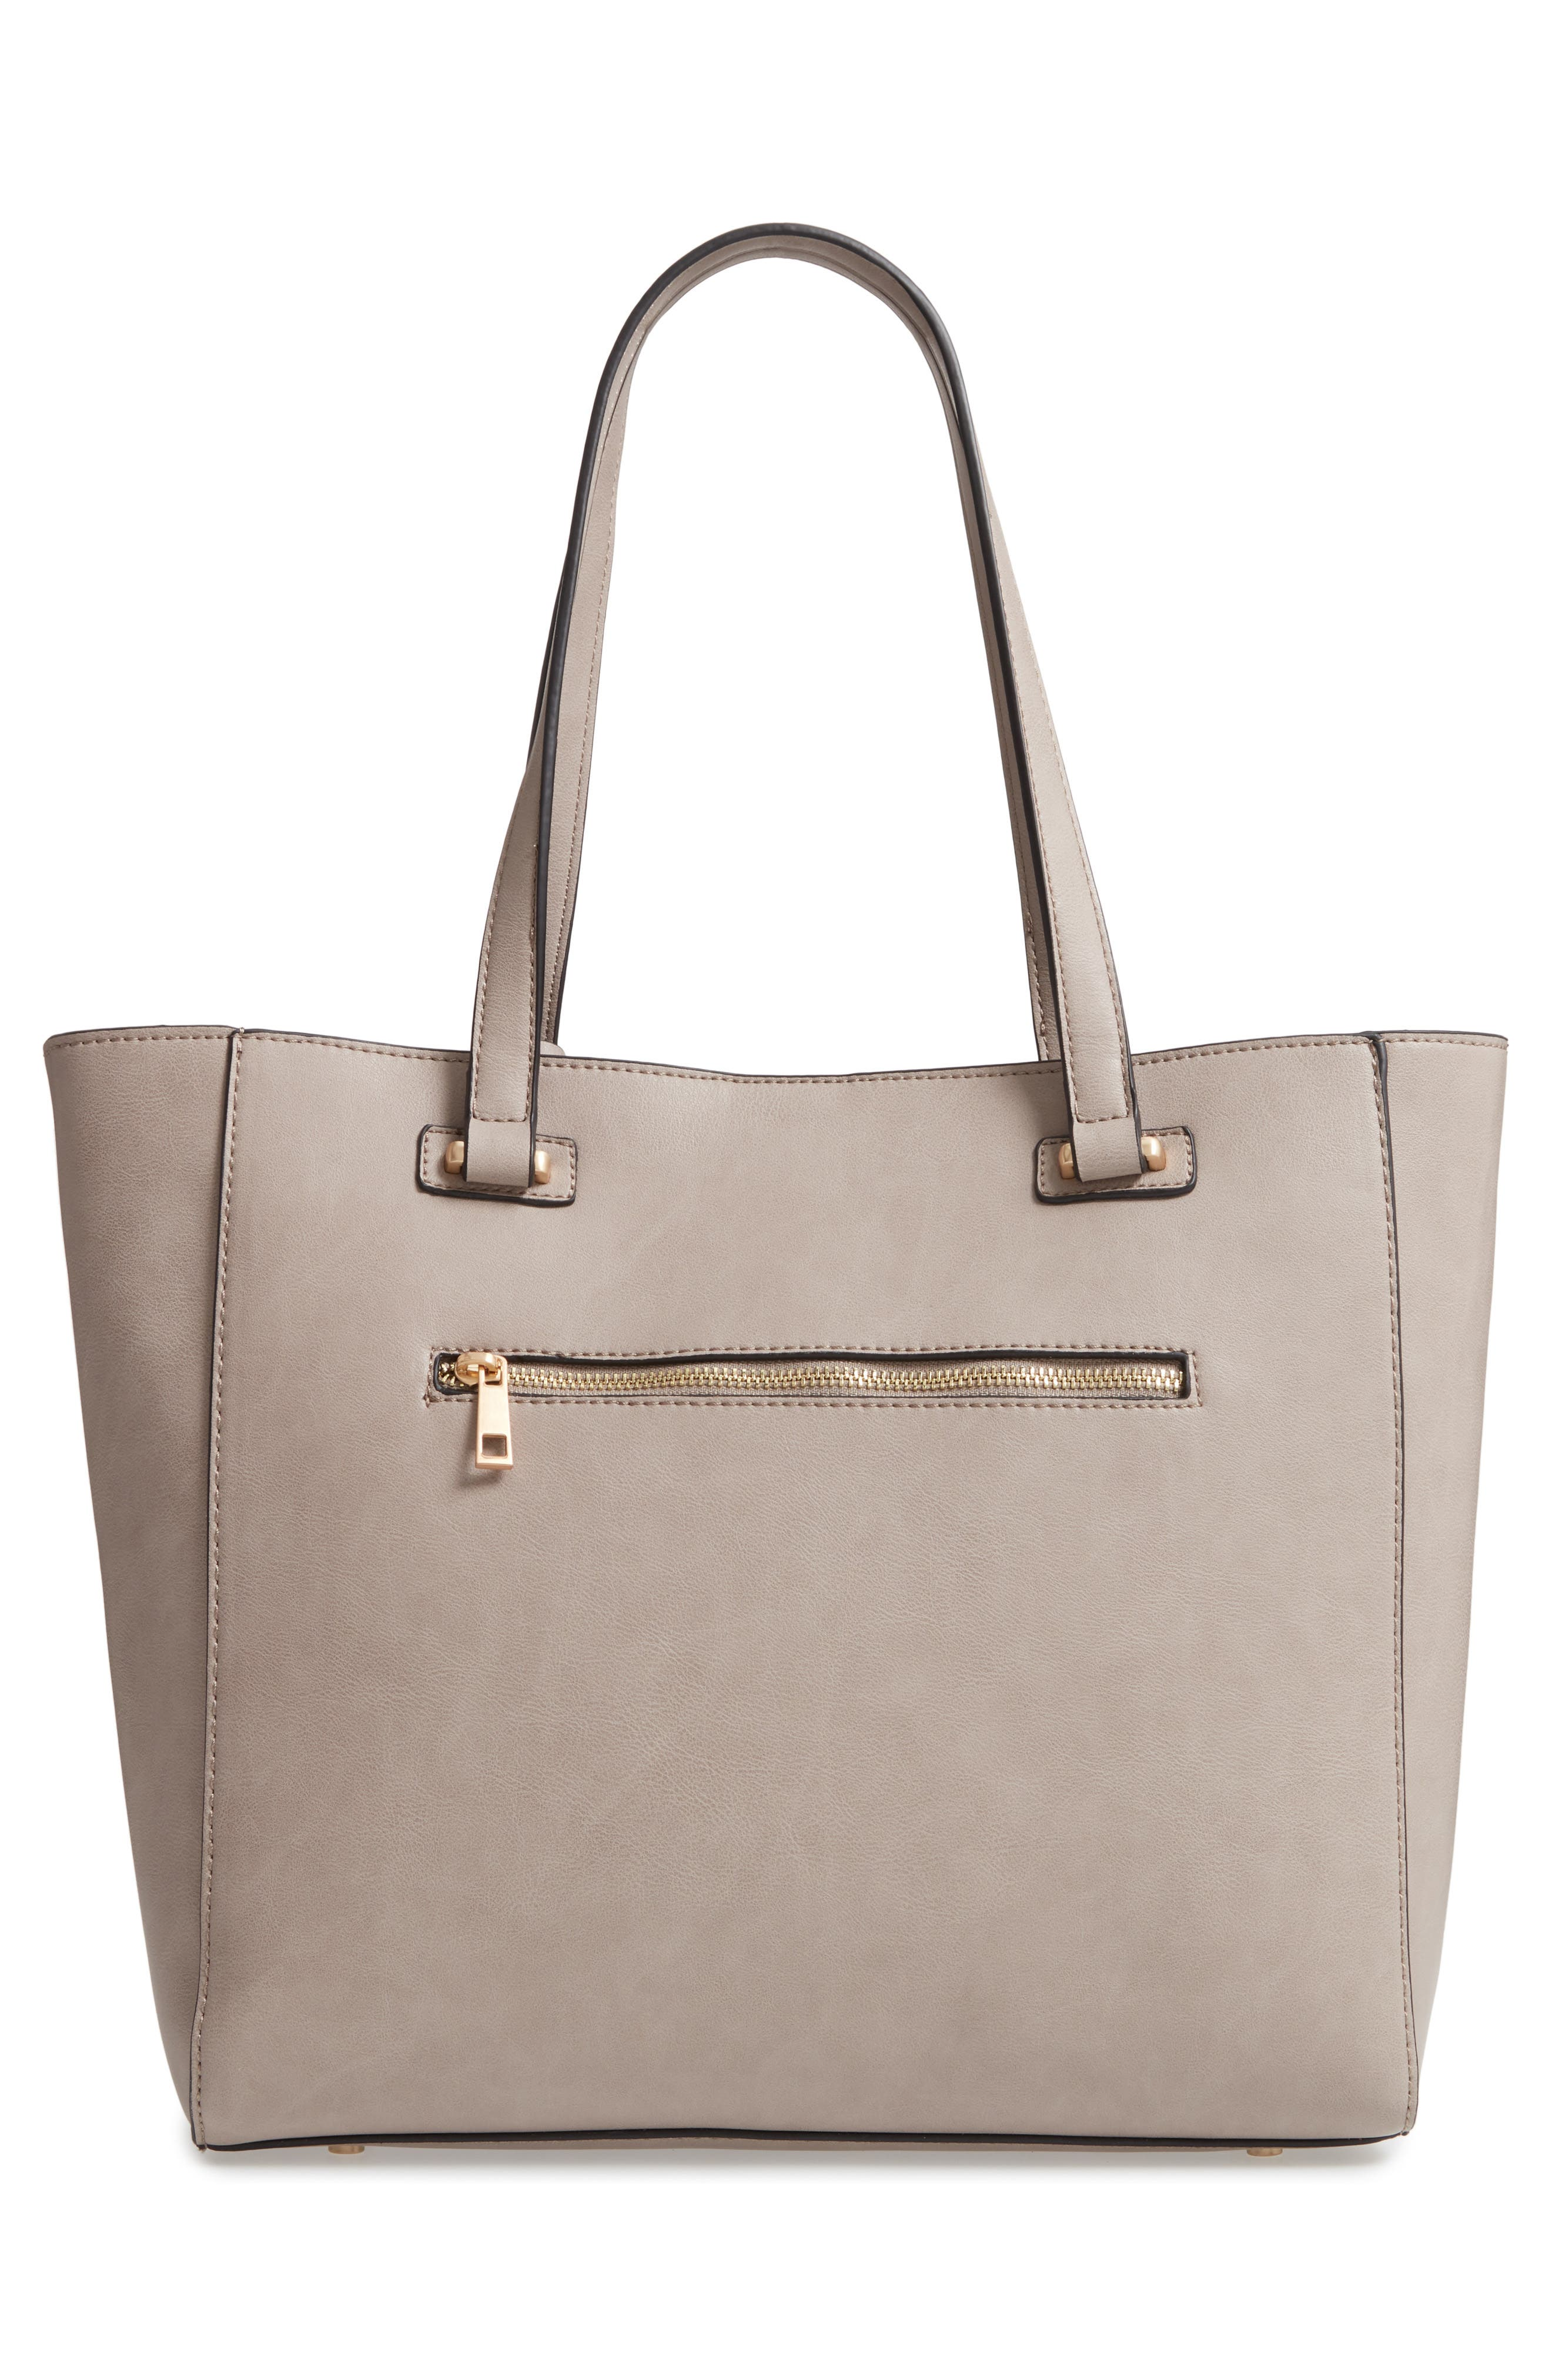 SOLE SOCIETY, Alyn Faux Leather Tote, Alternate thumbnail 3, color, GRAVEL